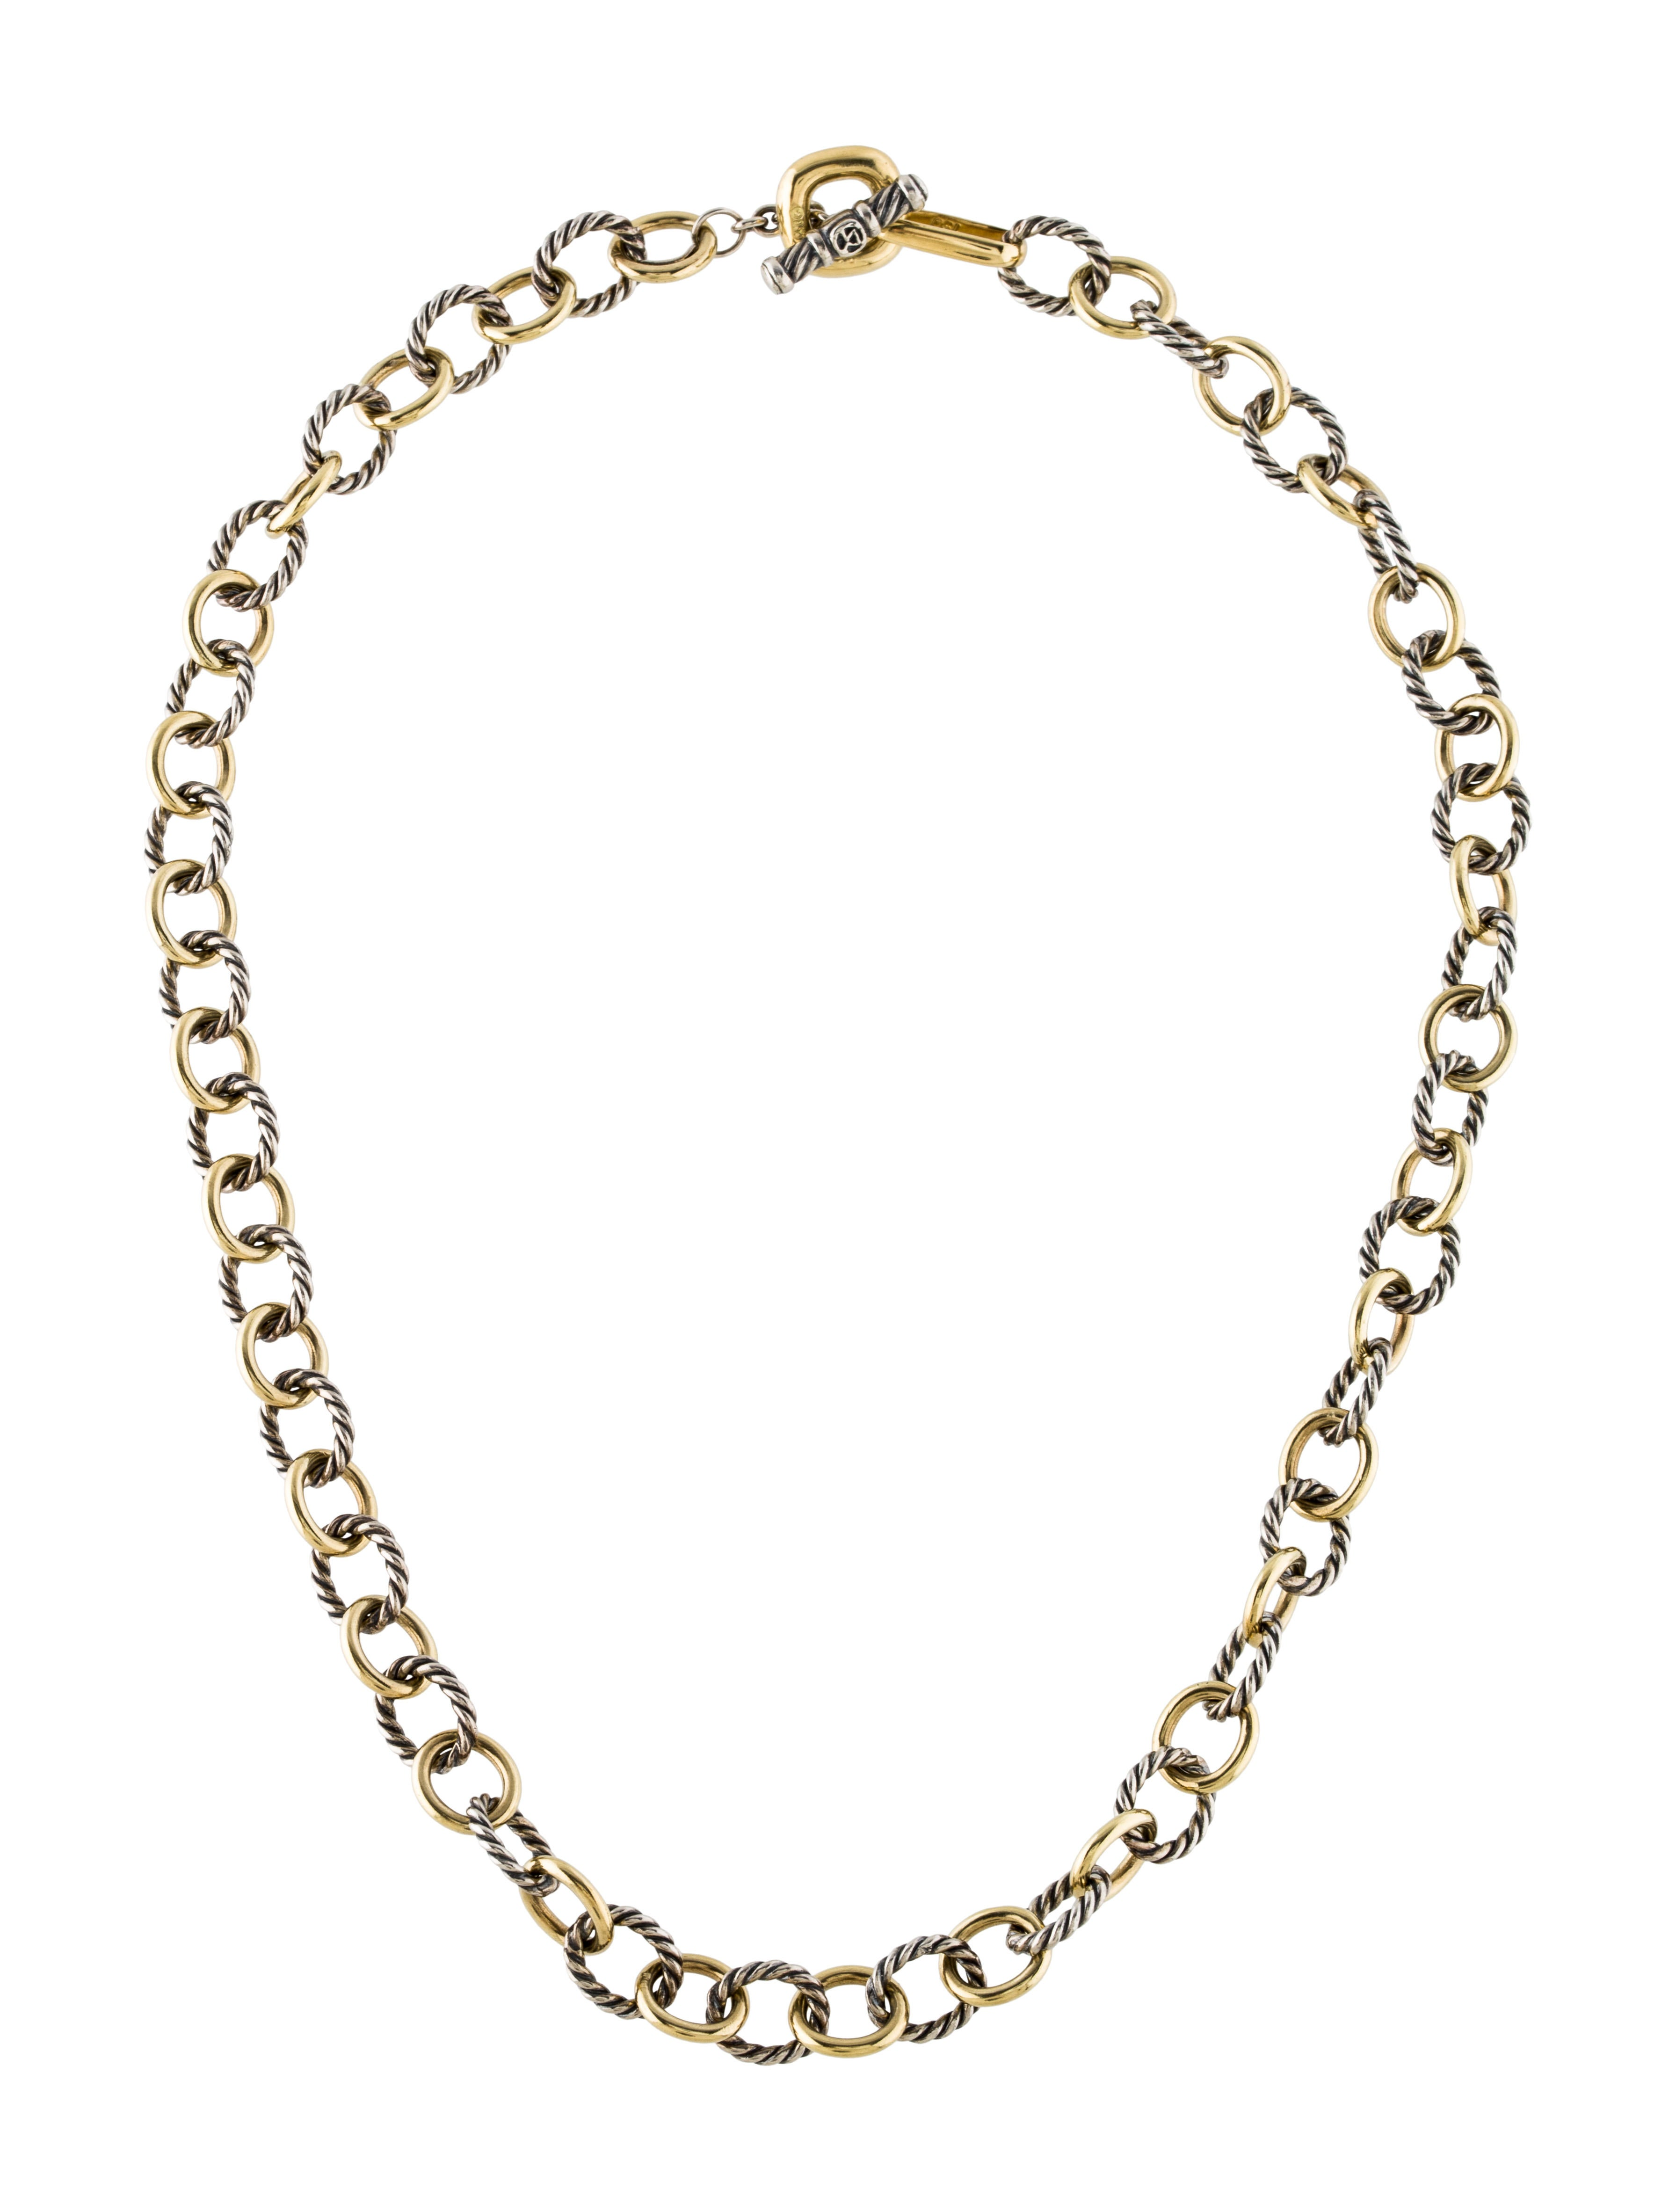 david yurman two tone oval link chain necklace necklaces. Black Bedroom Furniture Sets. Home Design Ideas